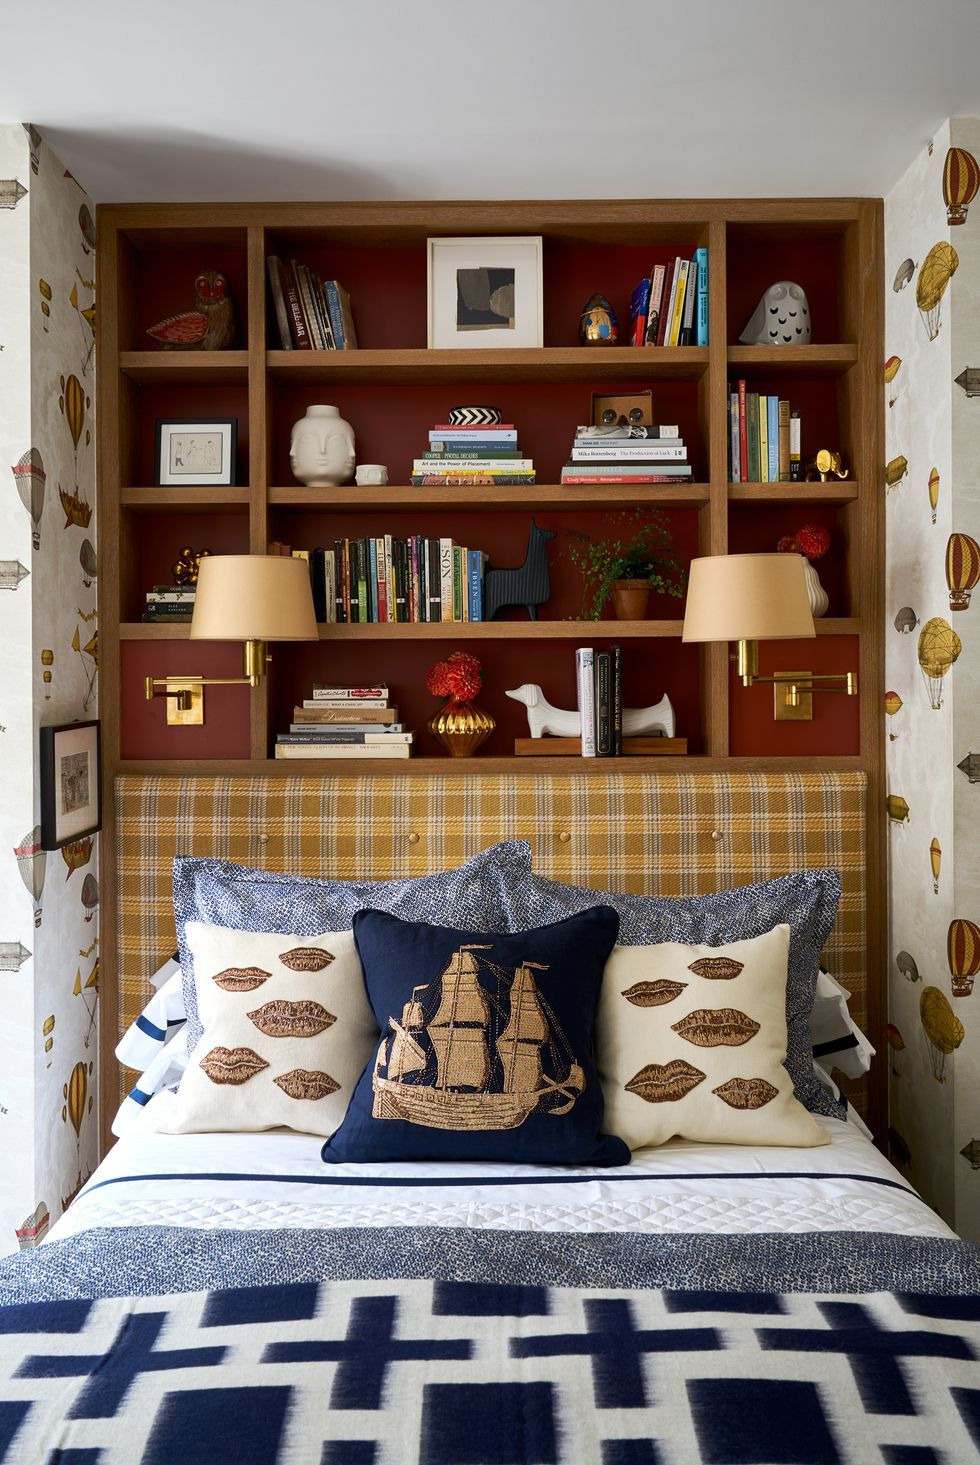 Awesome Small Bedroom Ideas Unique 25 Small Bedroom Design Ideas How to Decorate A Small Bedroom